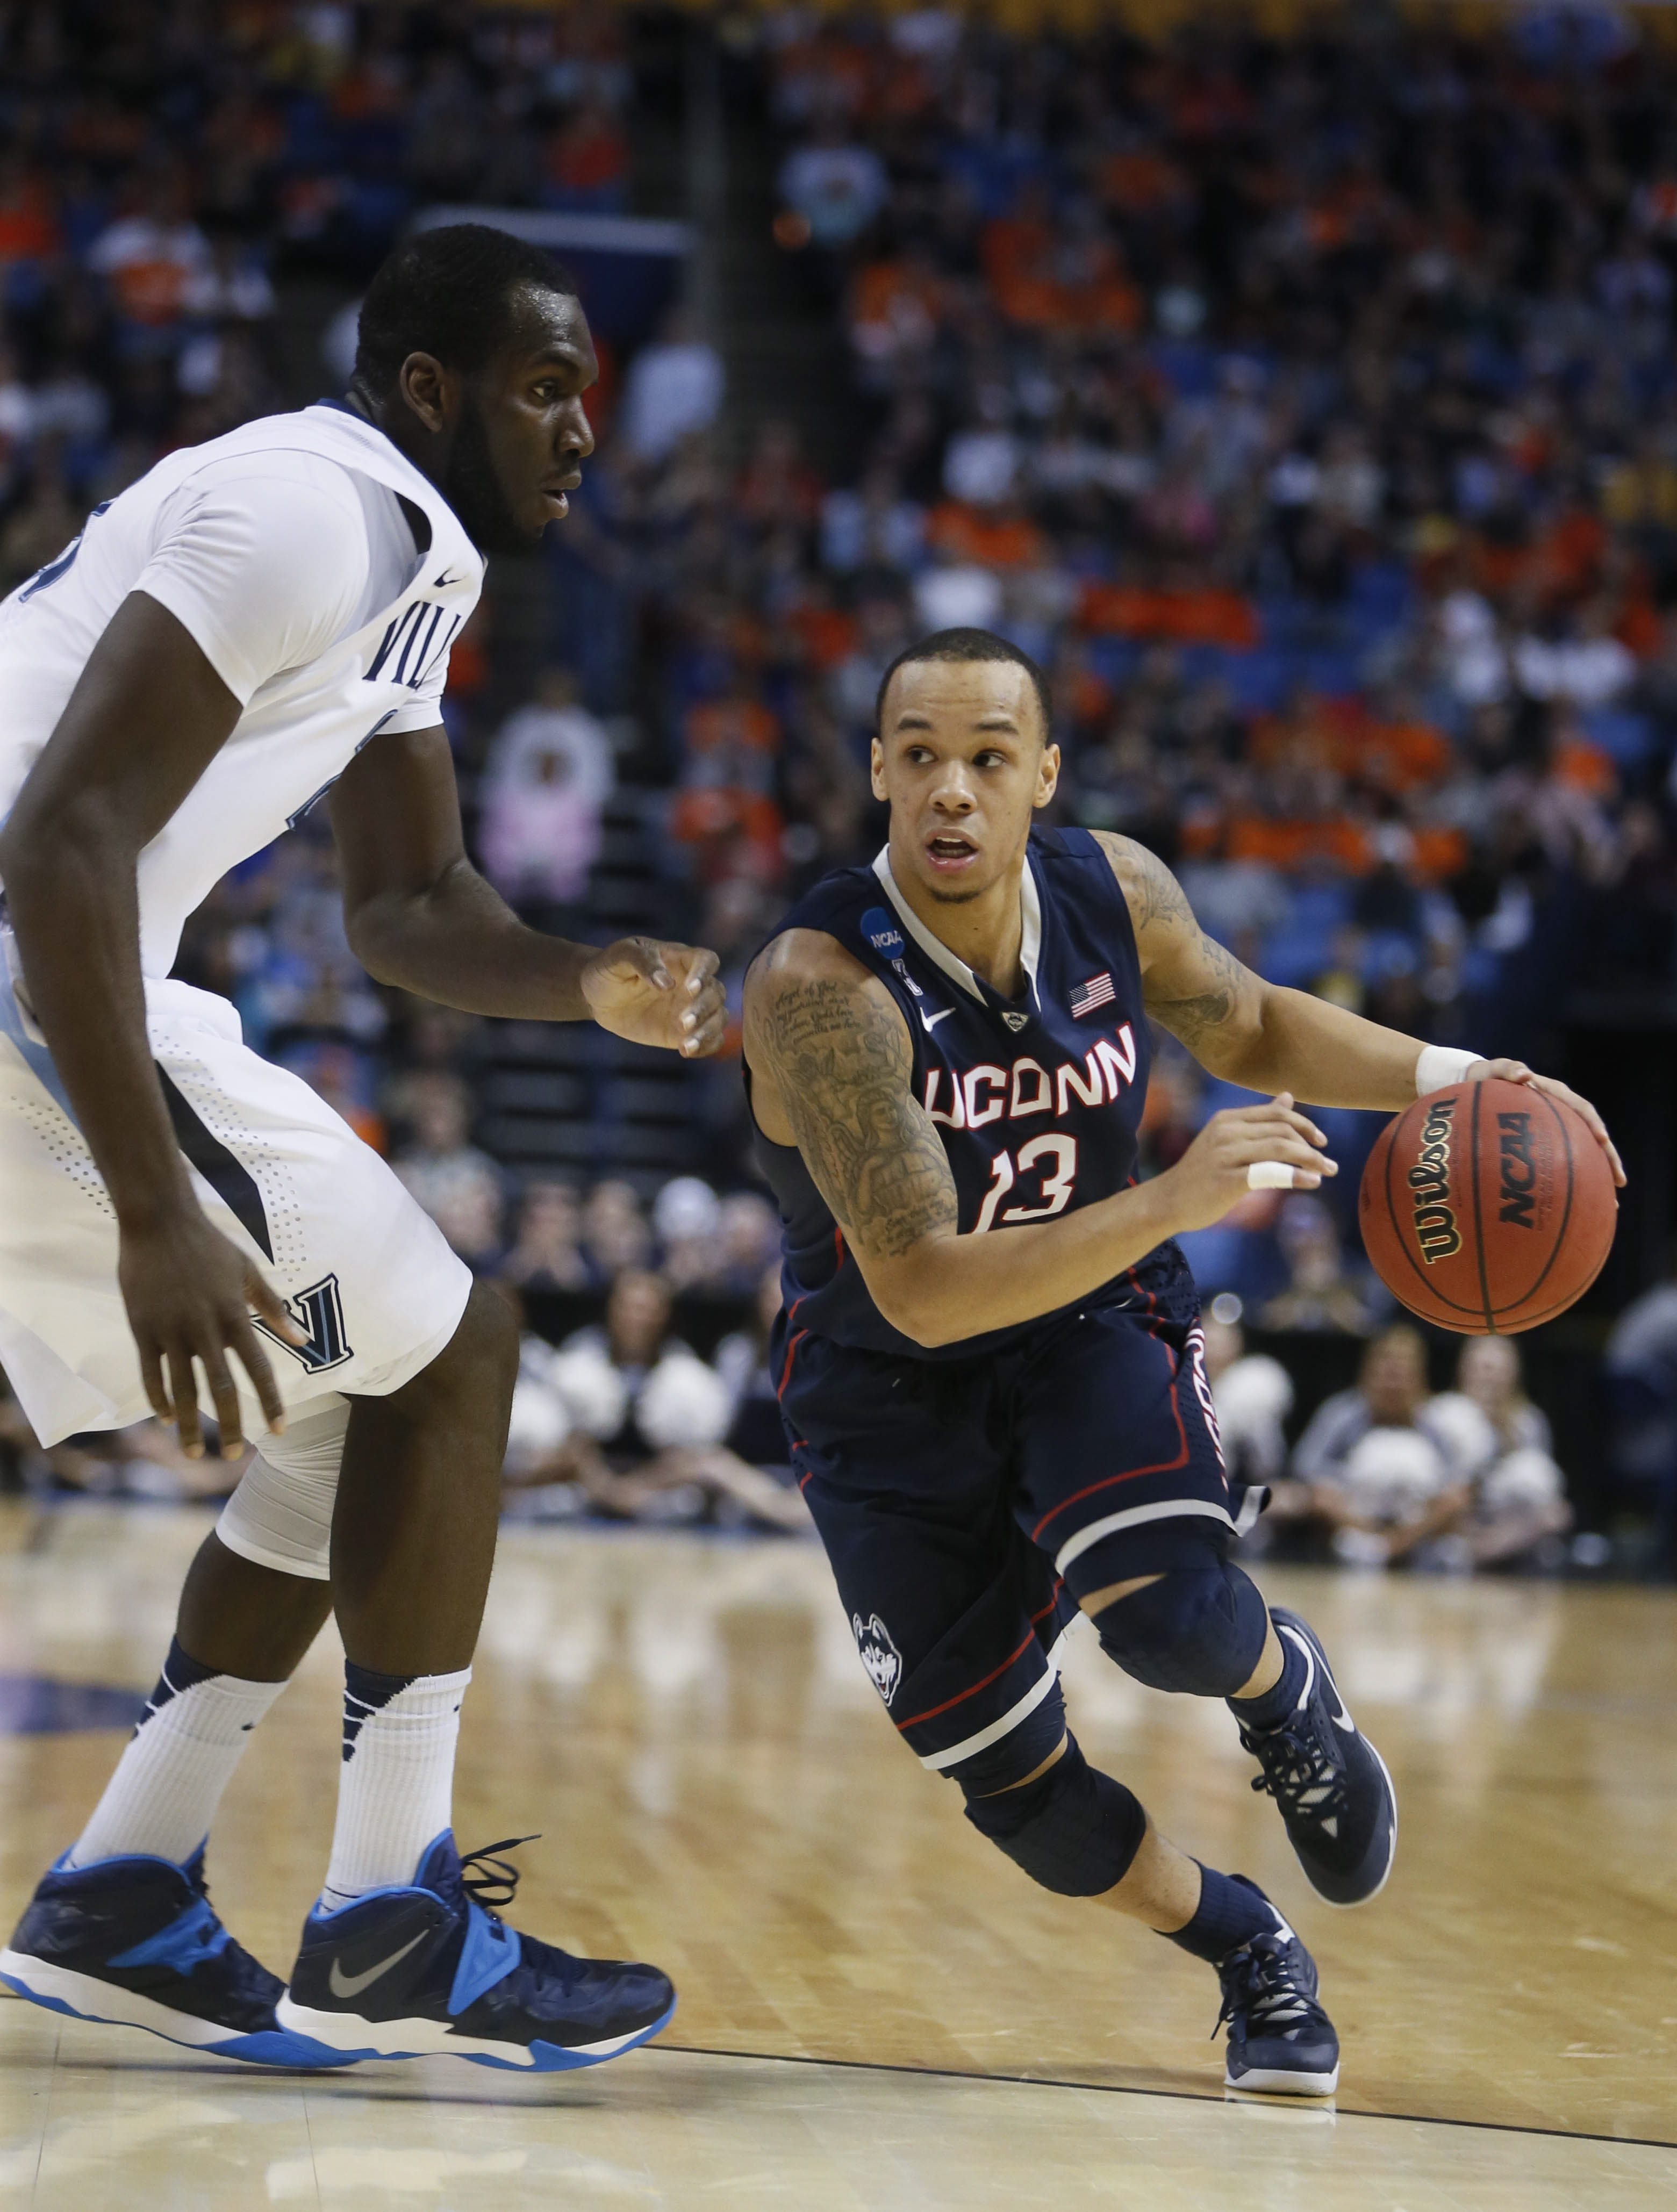 Shabazz Napier had 25 points in 25 minutes Saturday to lead UConn.